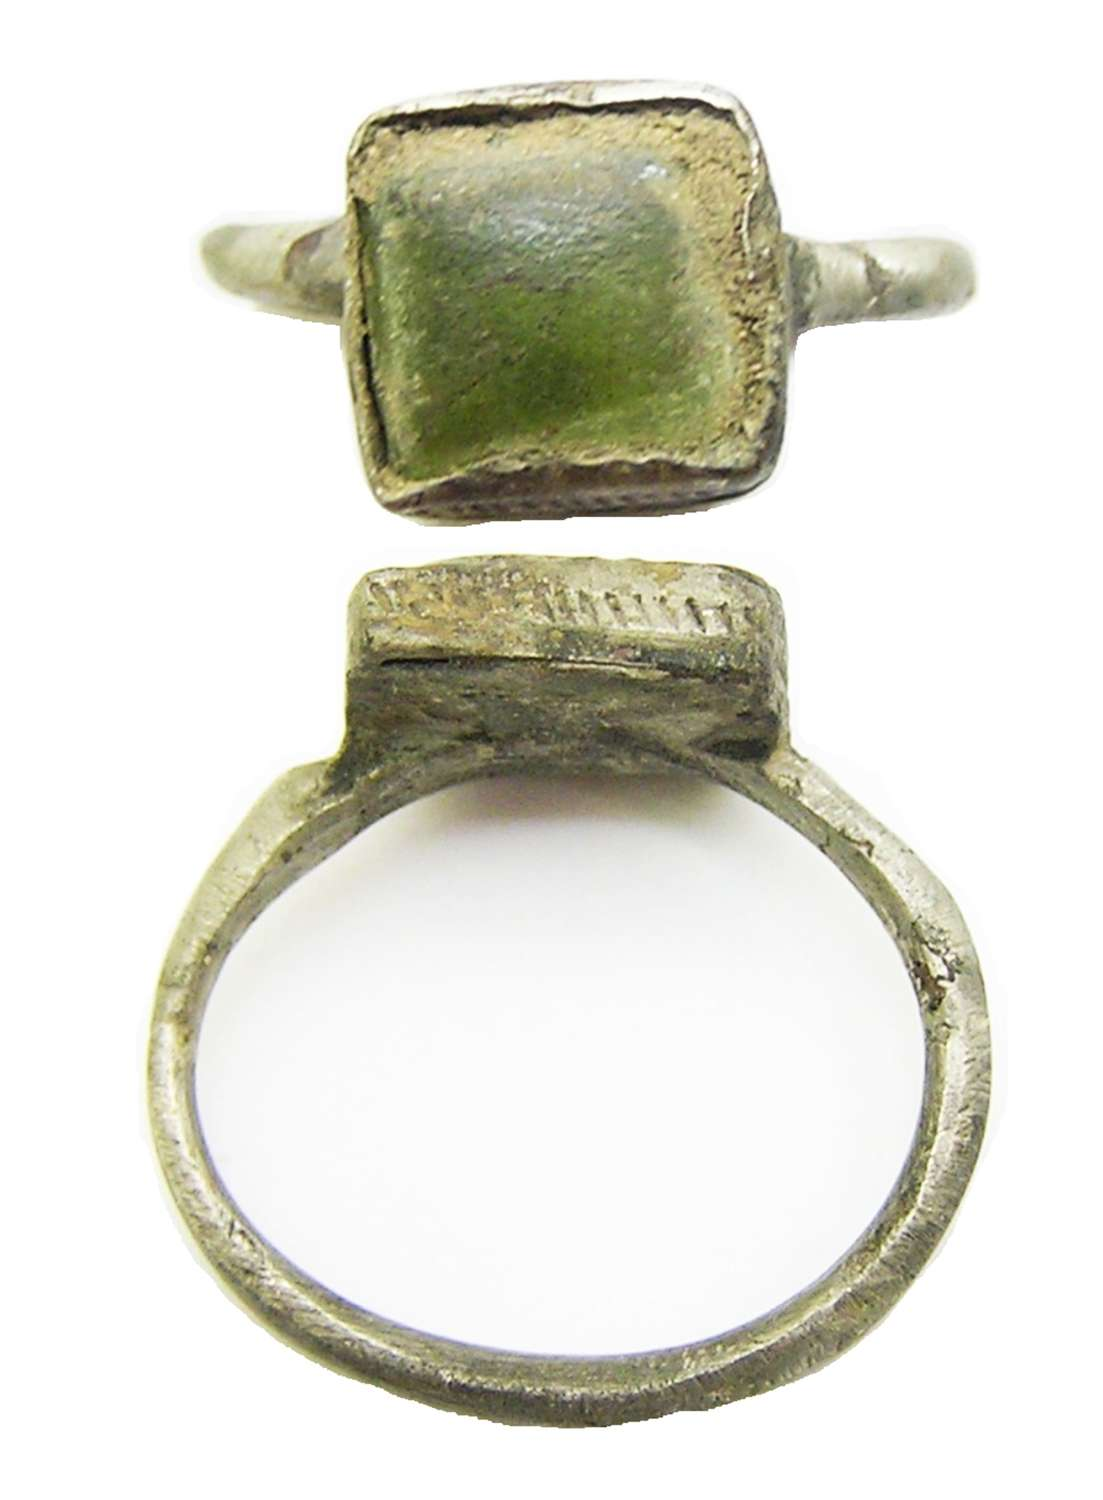 Late Medieval silver finger ring